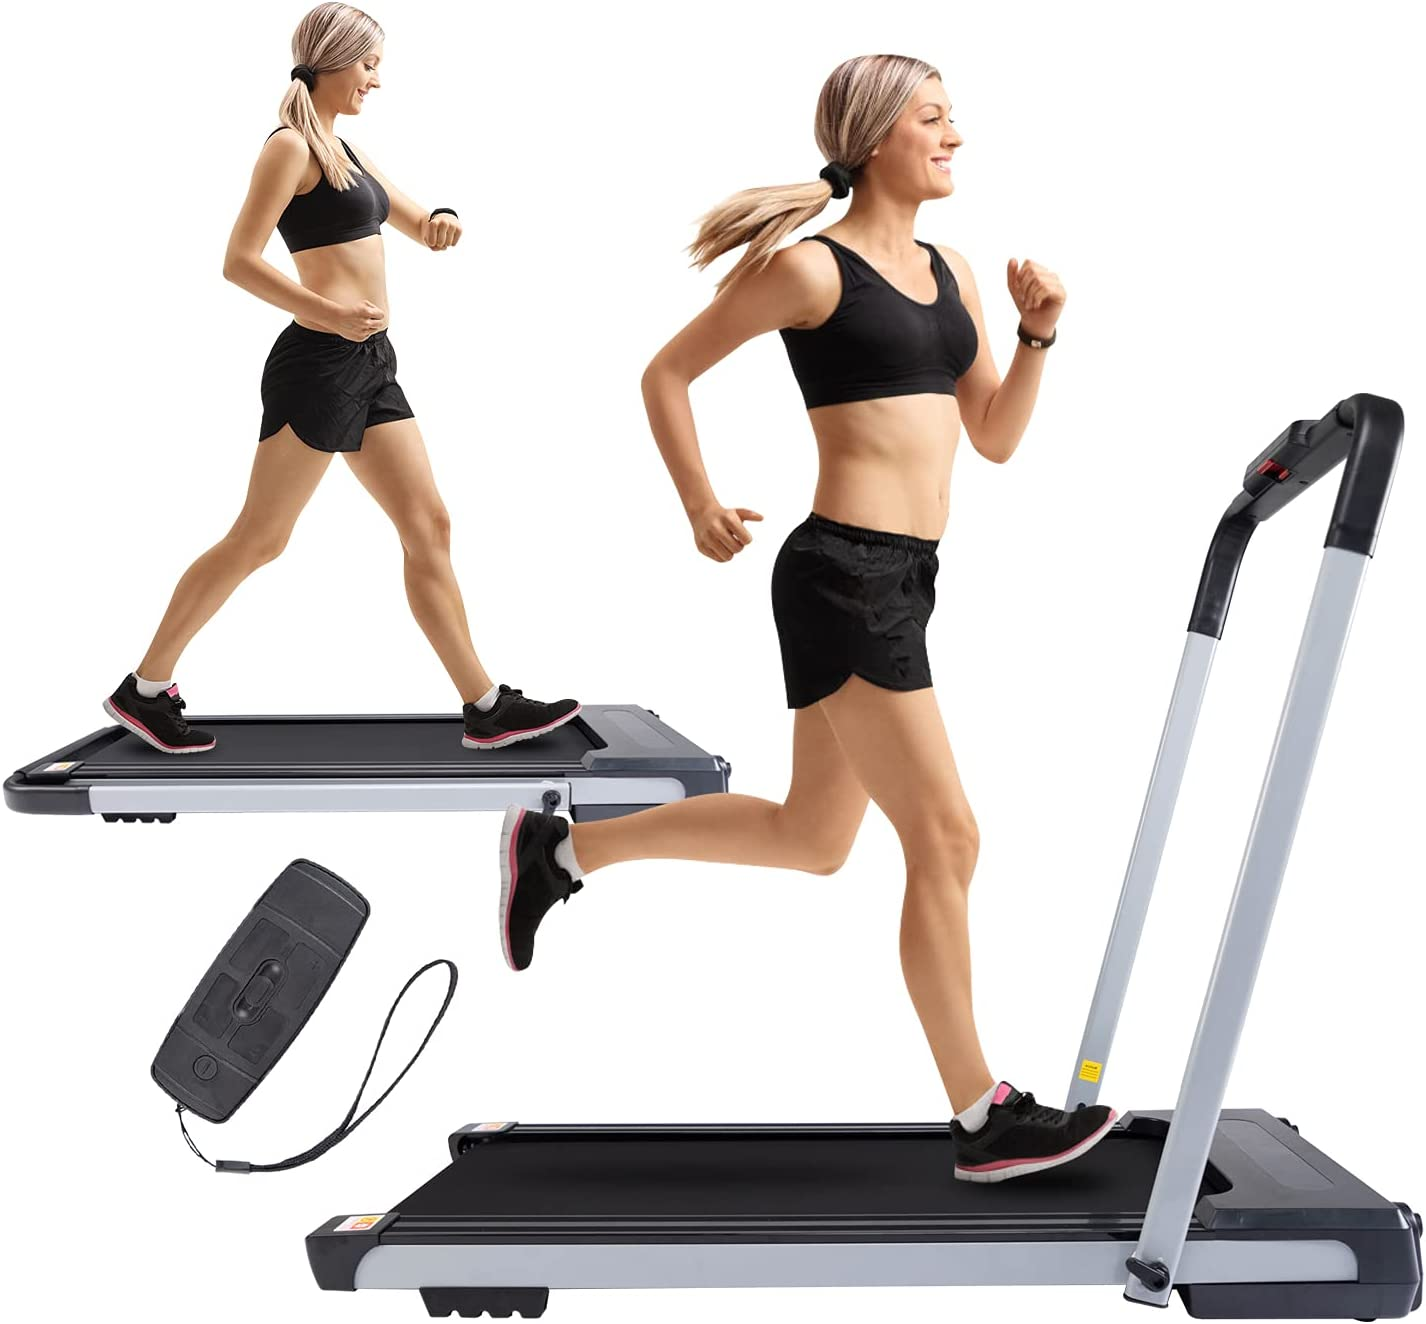 2 in 1 Folding Elegant Under Desk Courier shipping free Electric HP 2.5 Treadmill fo